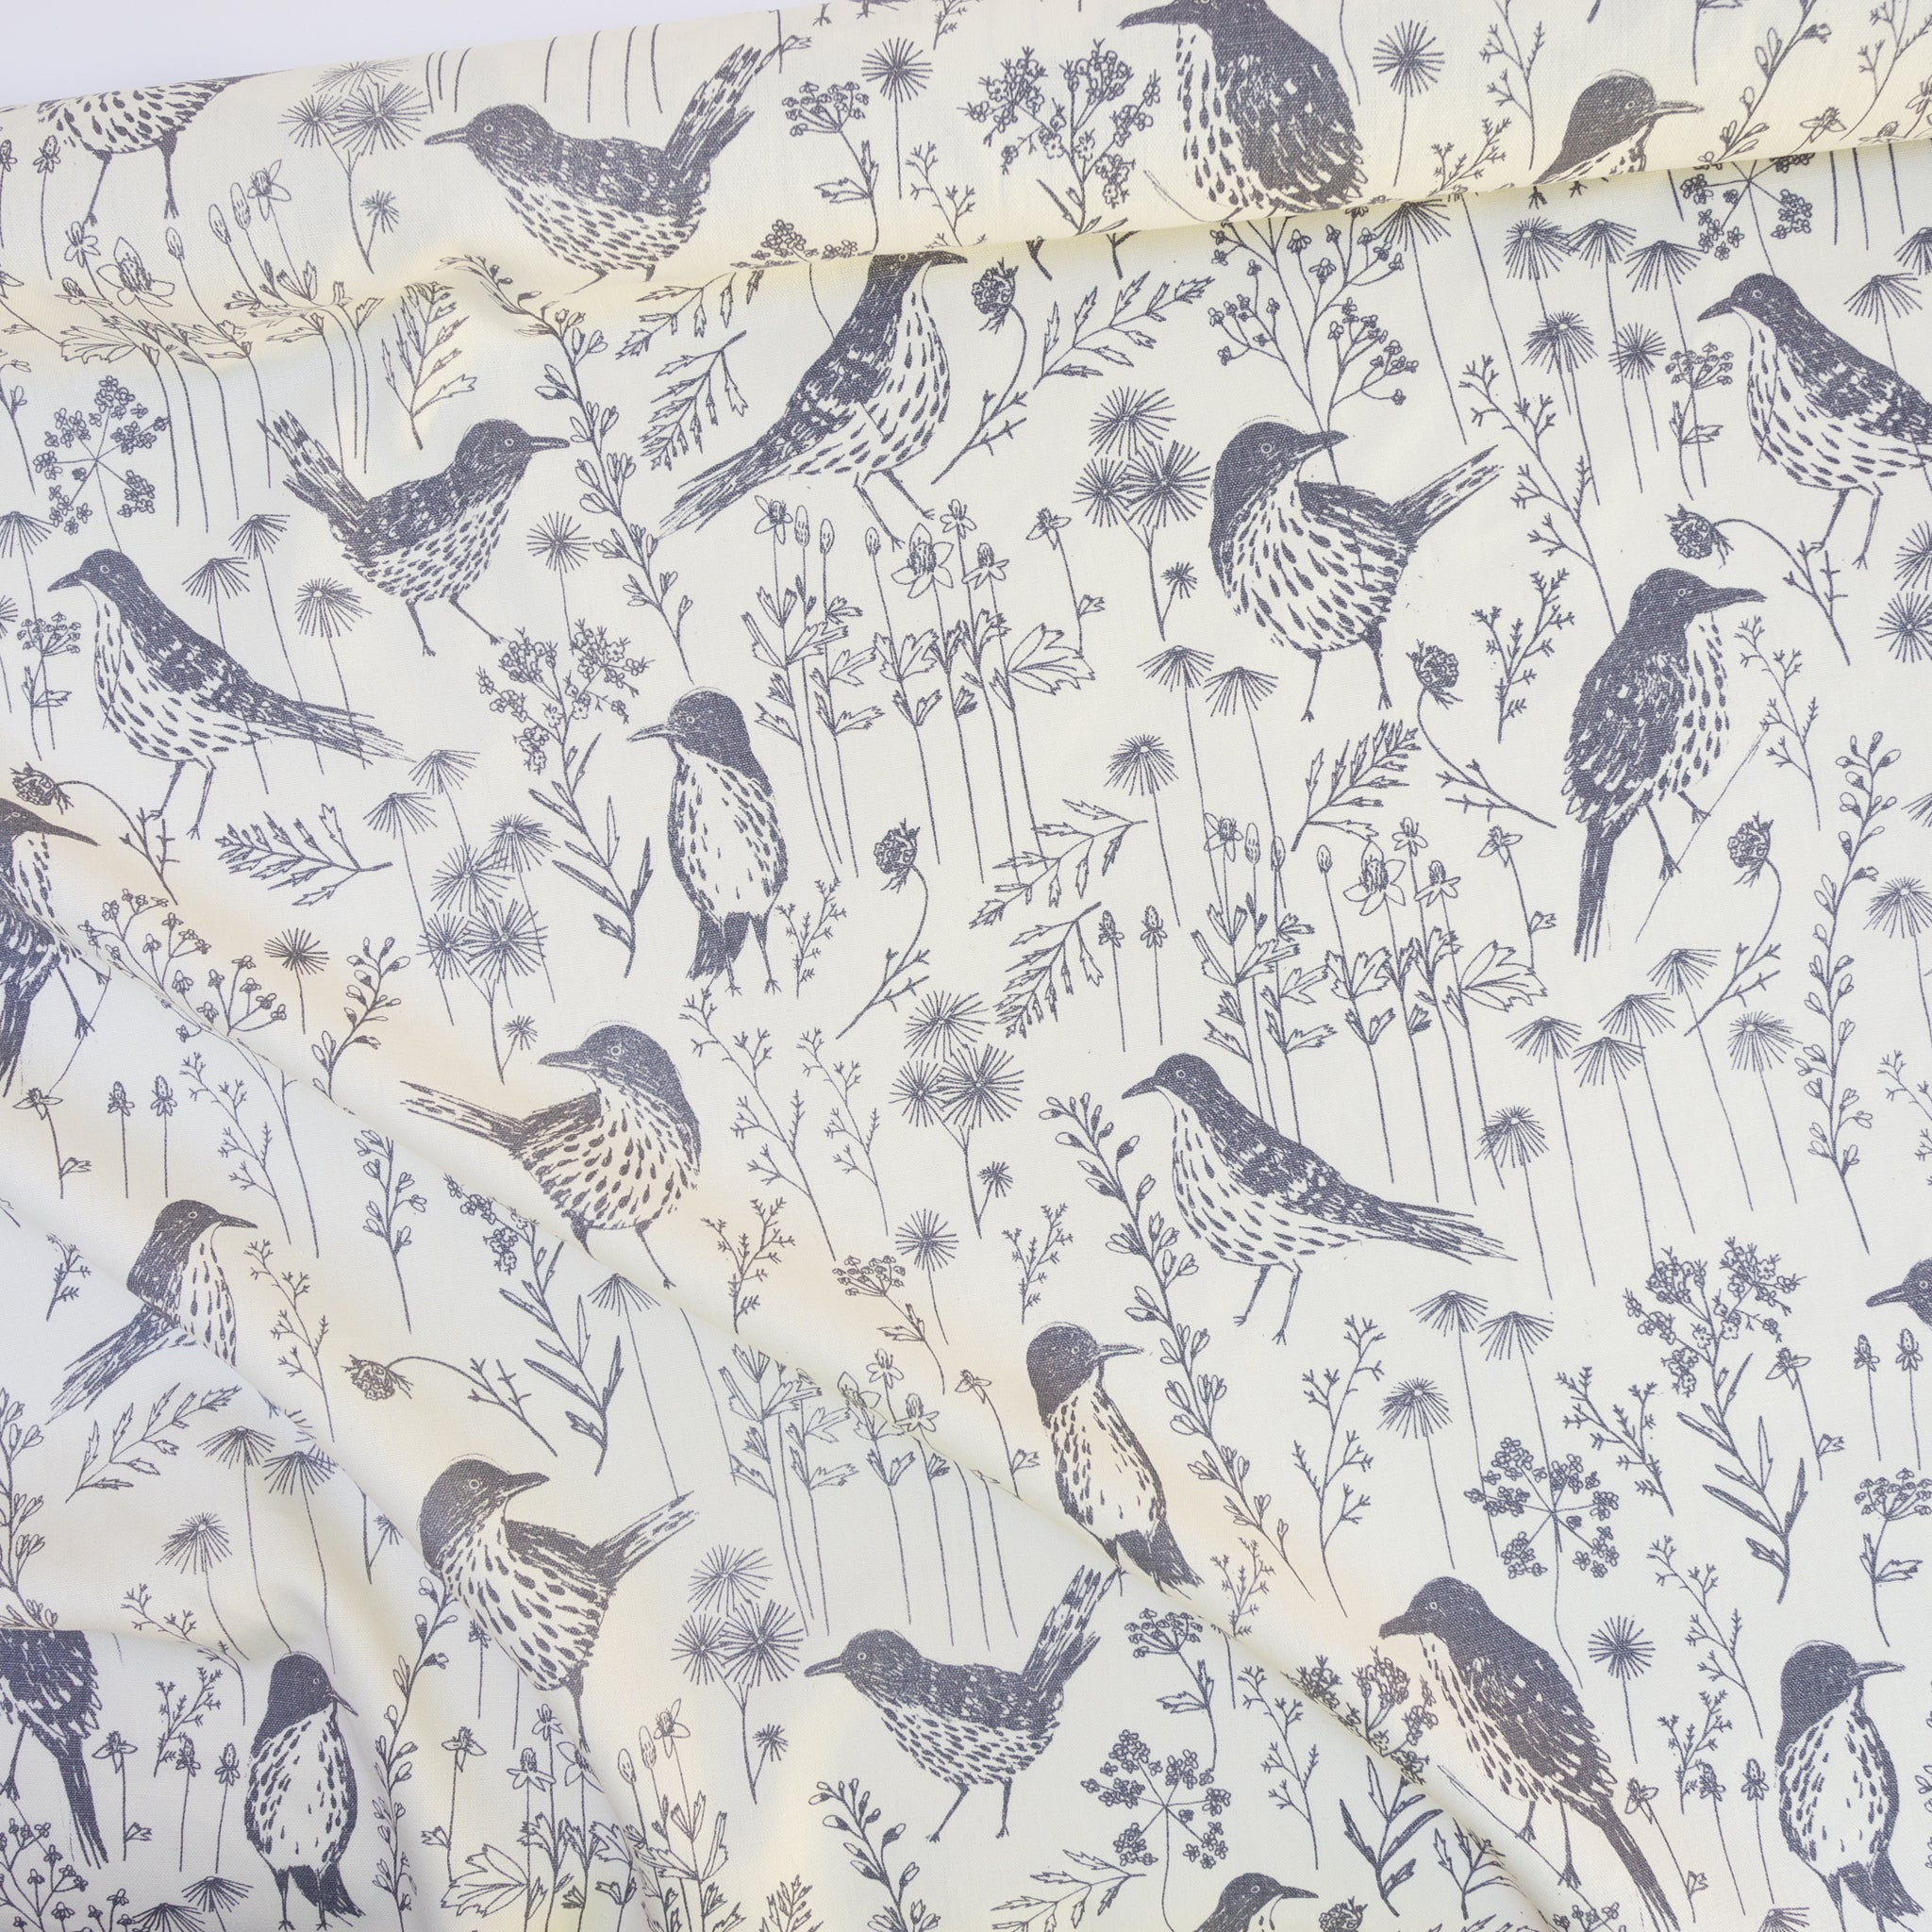 Screenprinted fabric yardage with birds